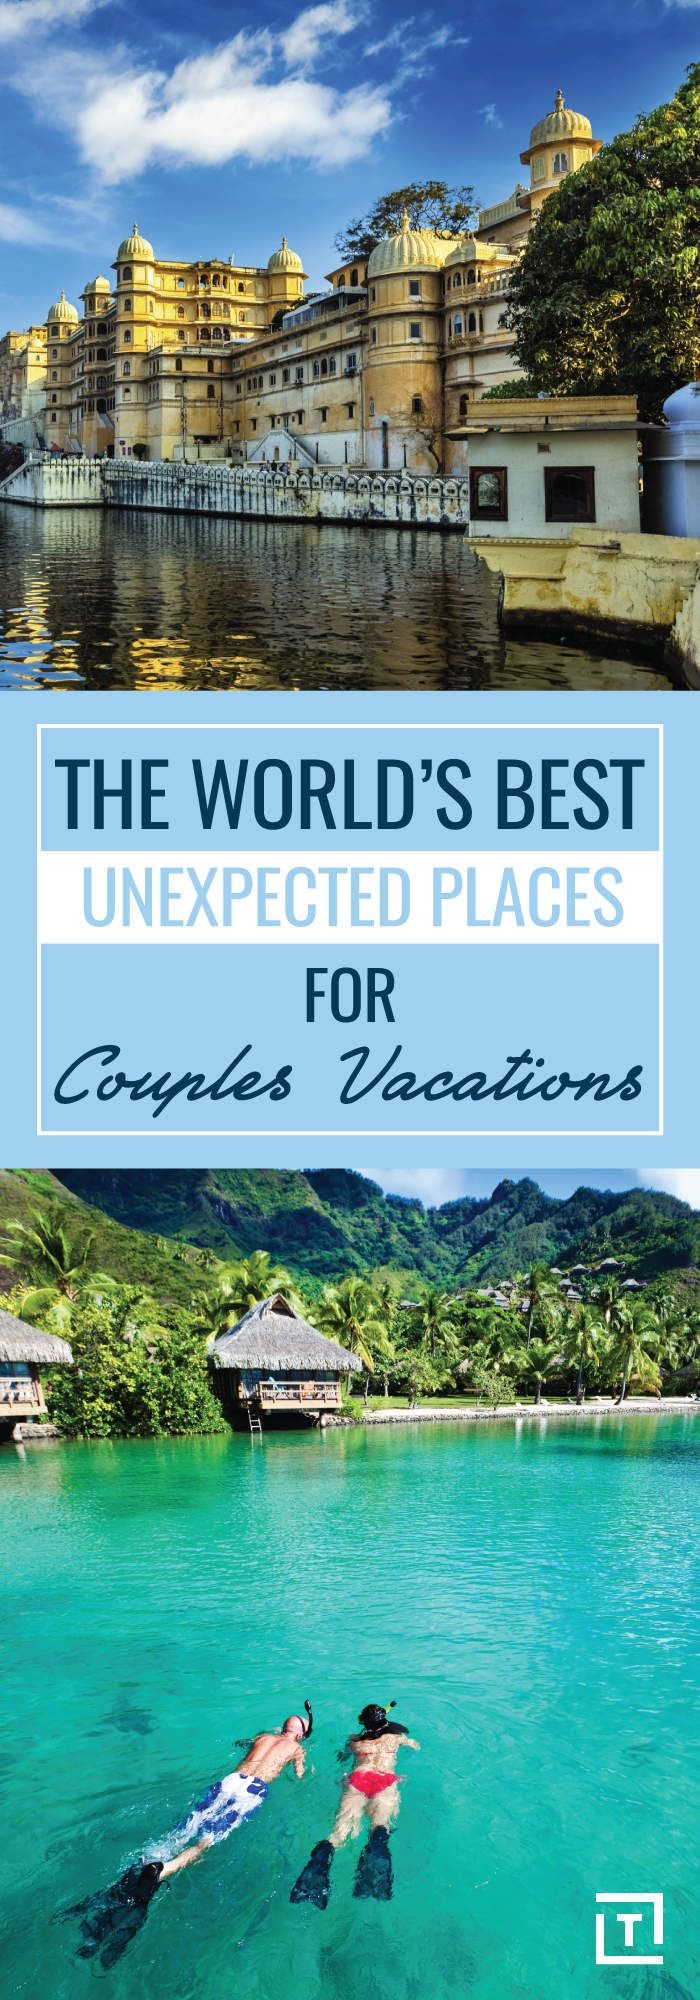 80 best with travel in mind images on pinterest | travel list